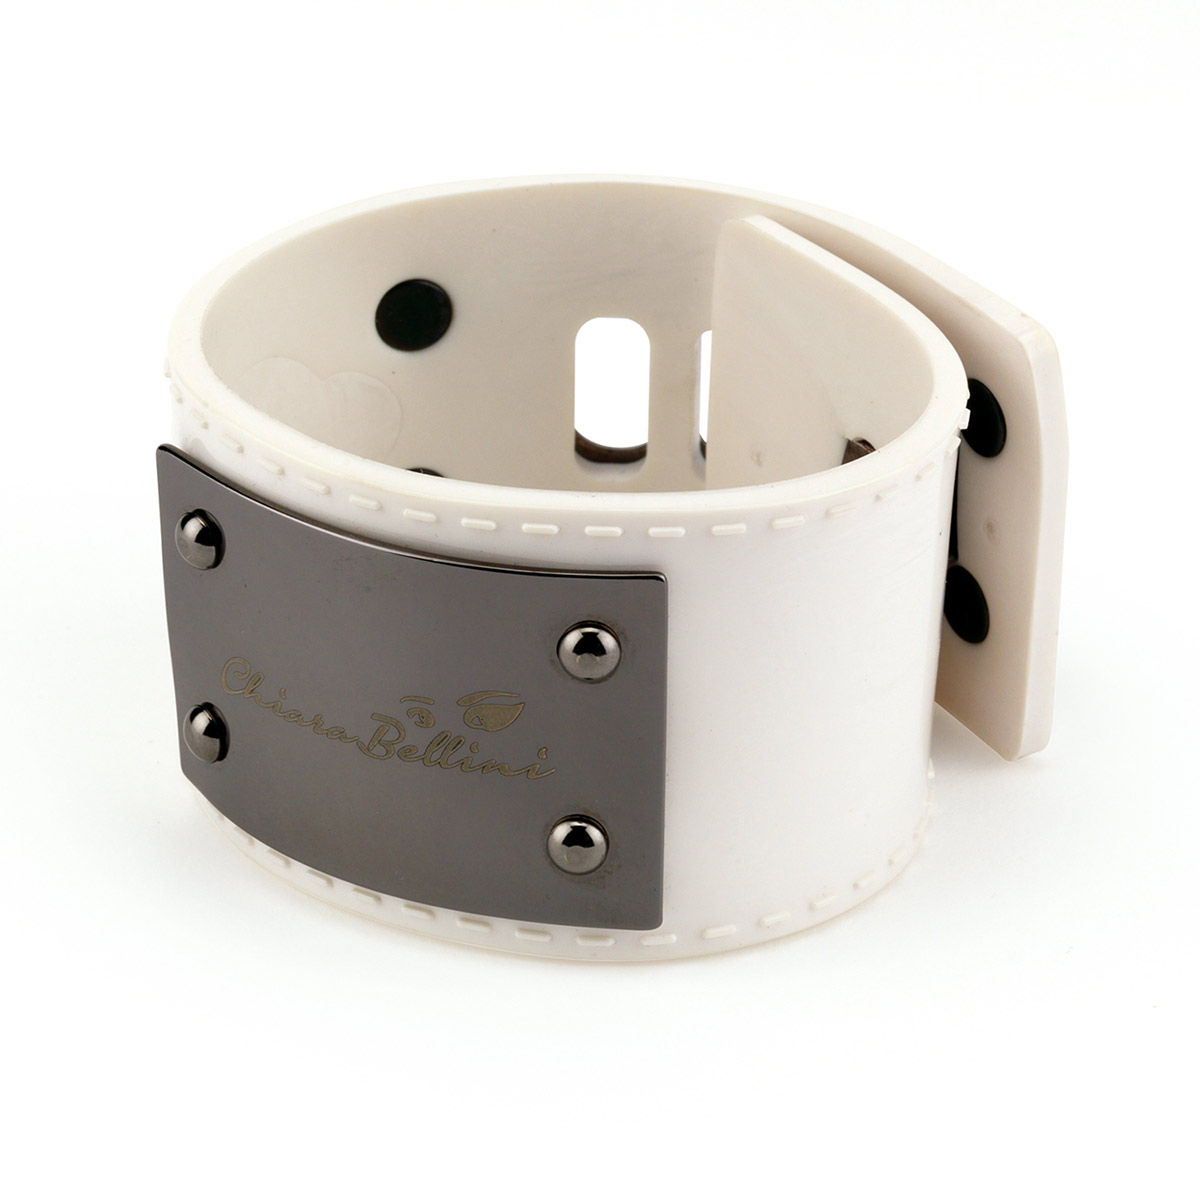 Bracelet in White Pvc with metal plate